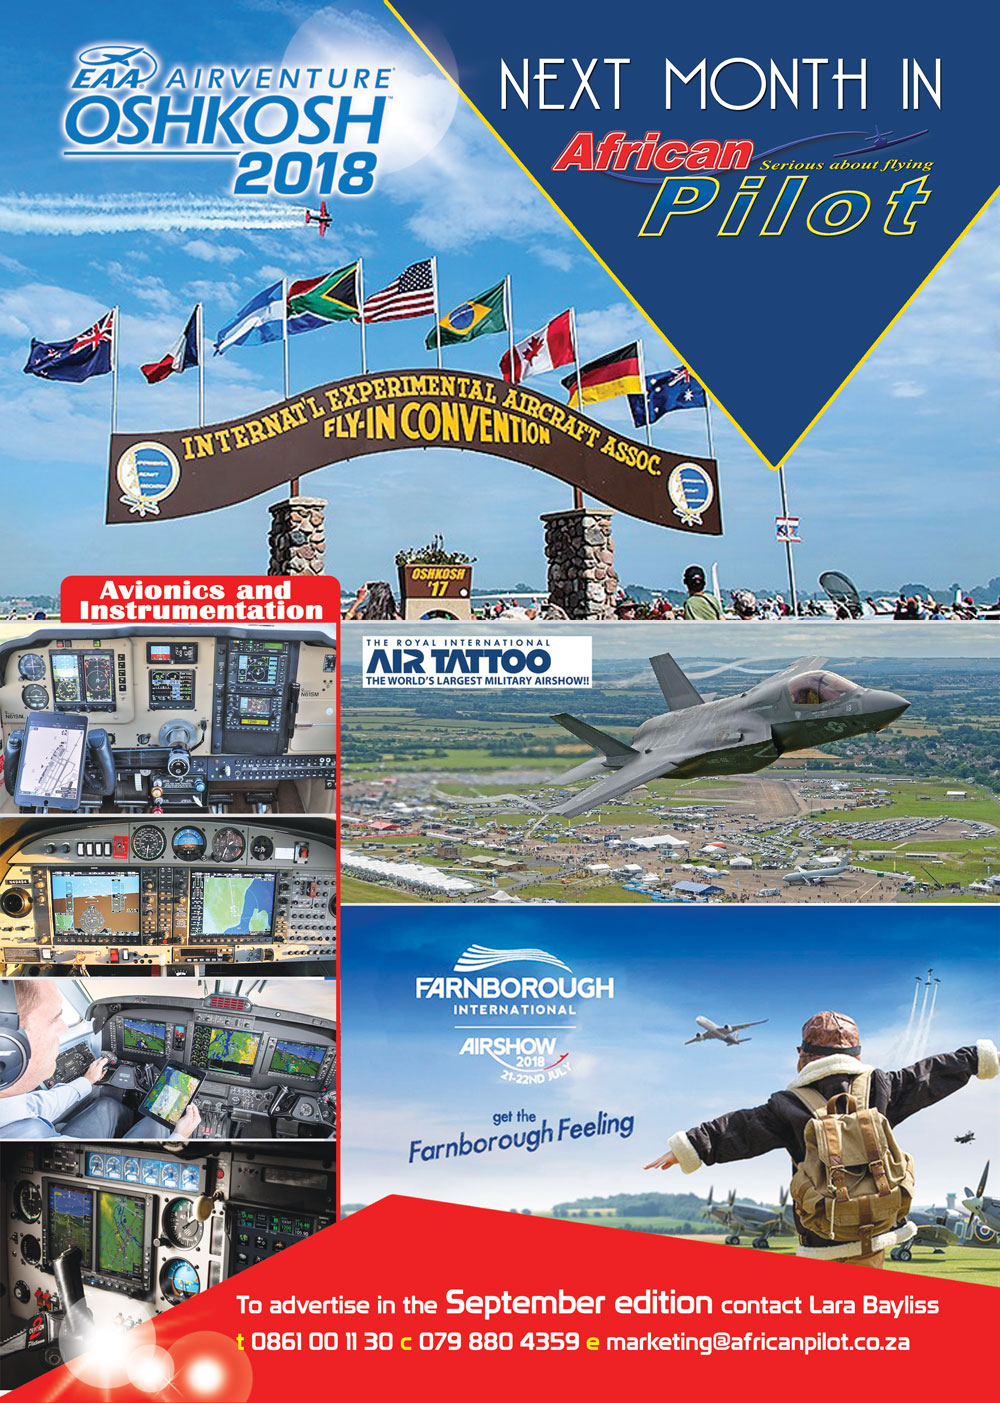 September 2018 edition of African Pilot magazine